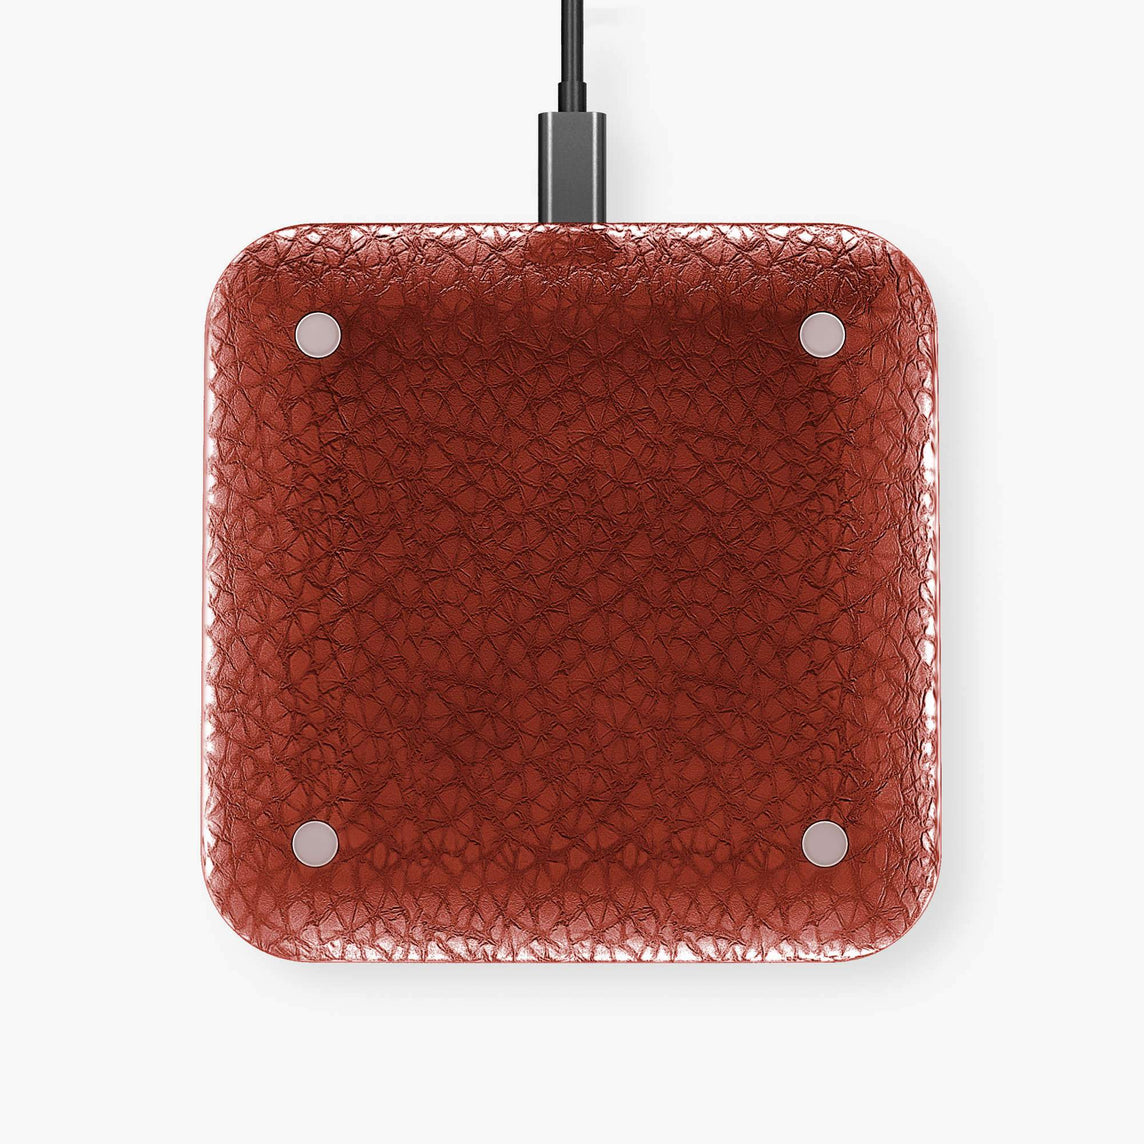 Hadoro Wireless Charging Pad Calfskin | Red - Stainless Steel without-personalization